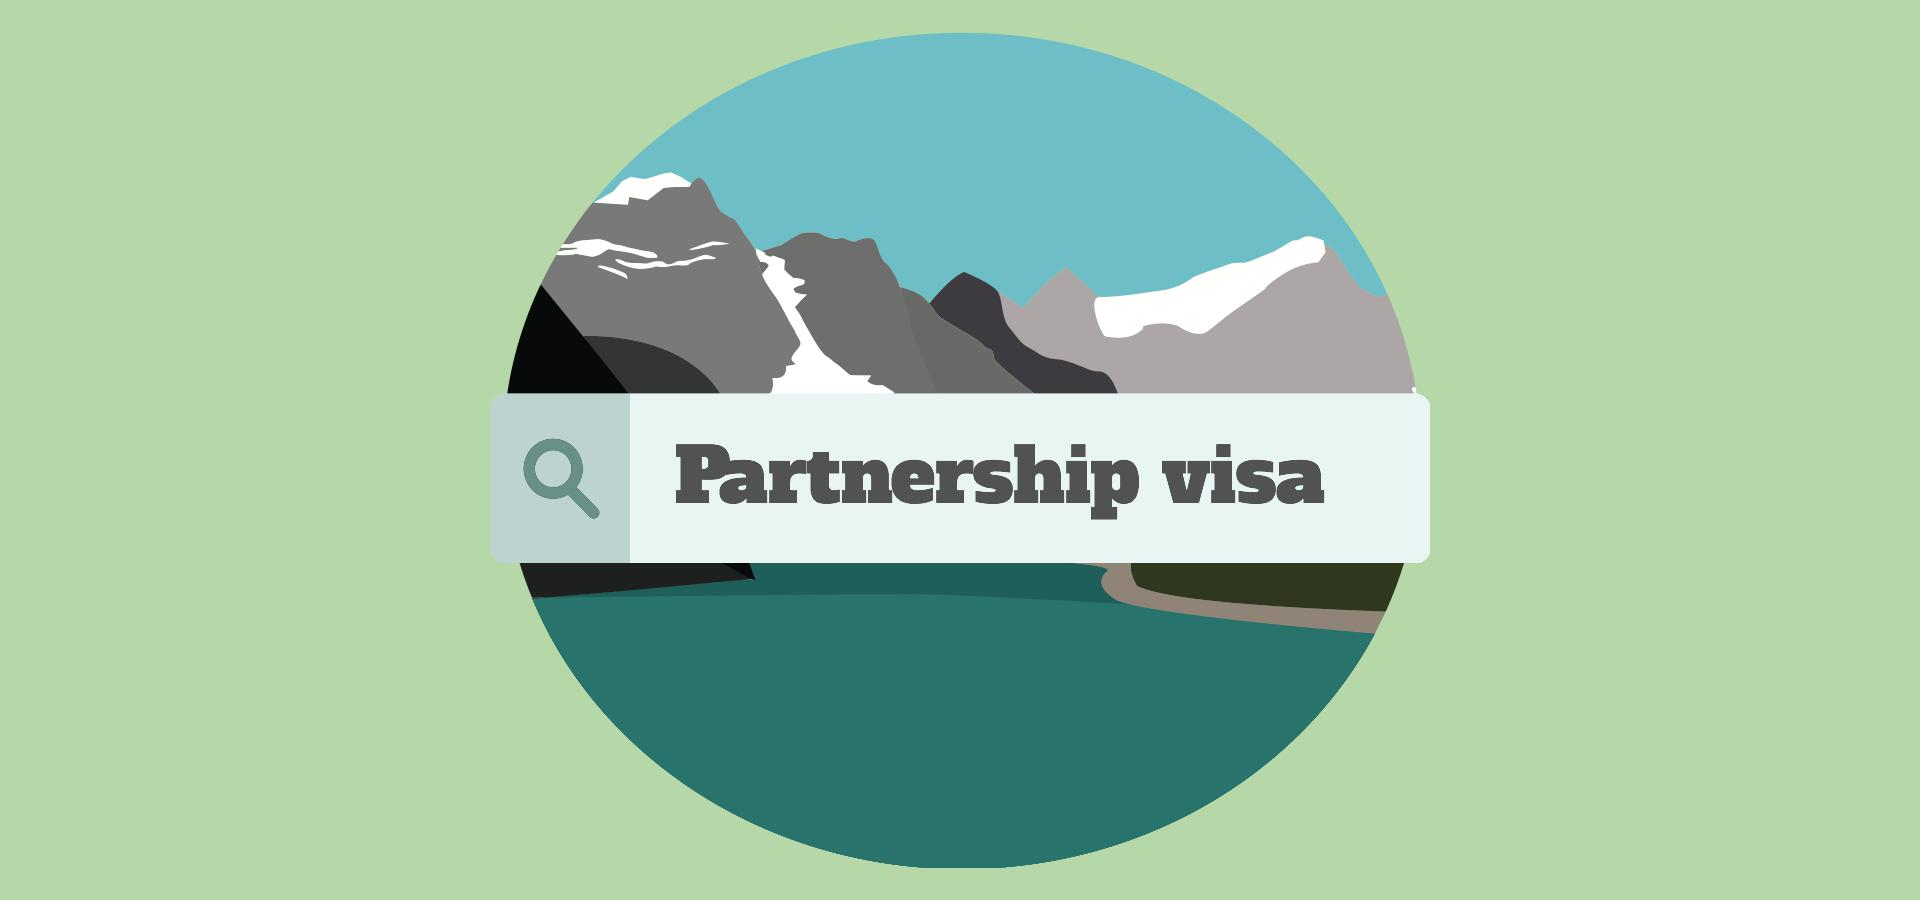 Partnership visa